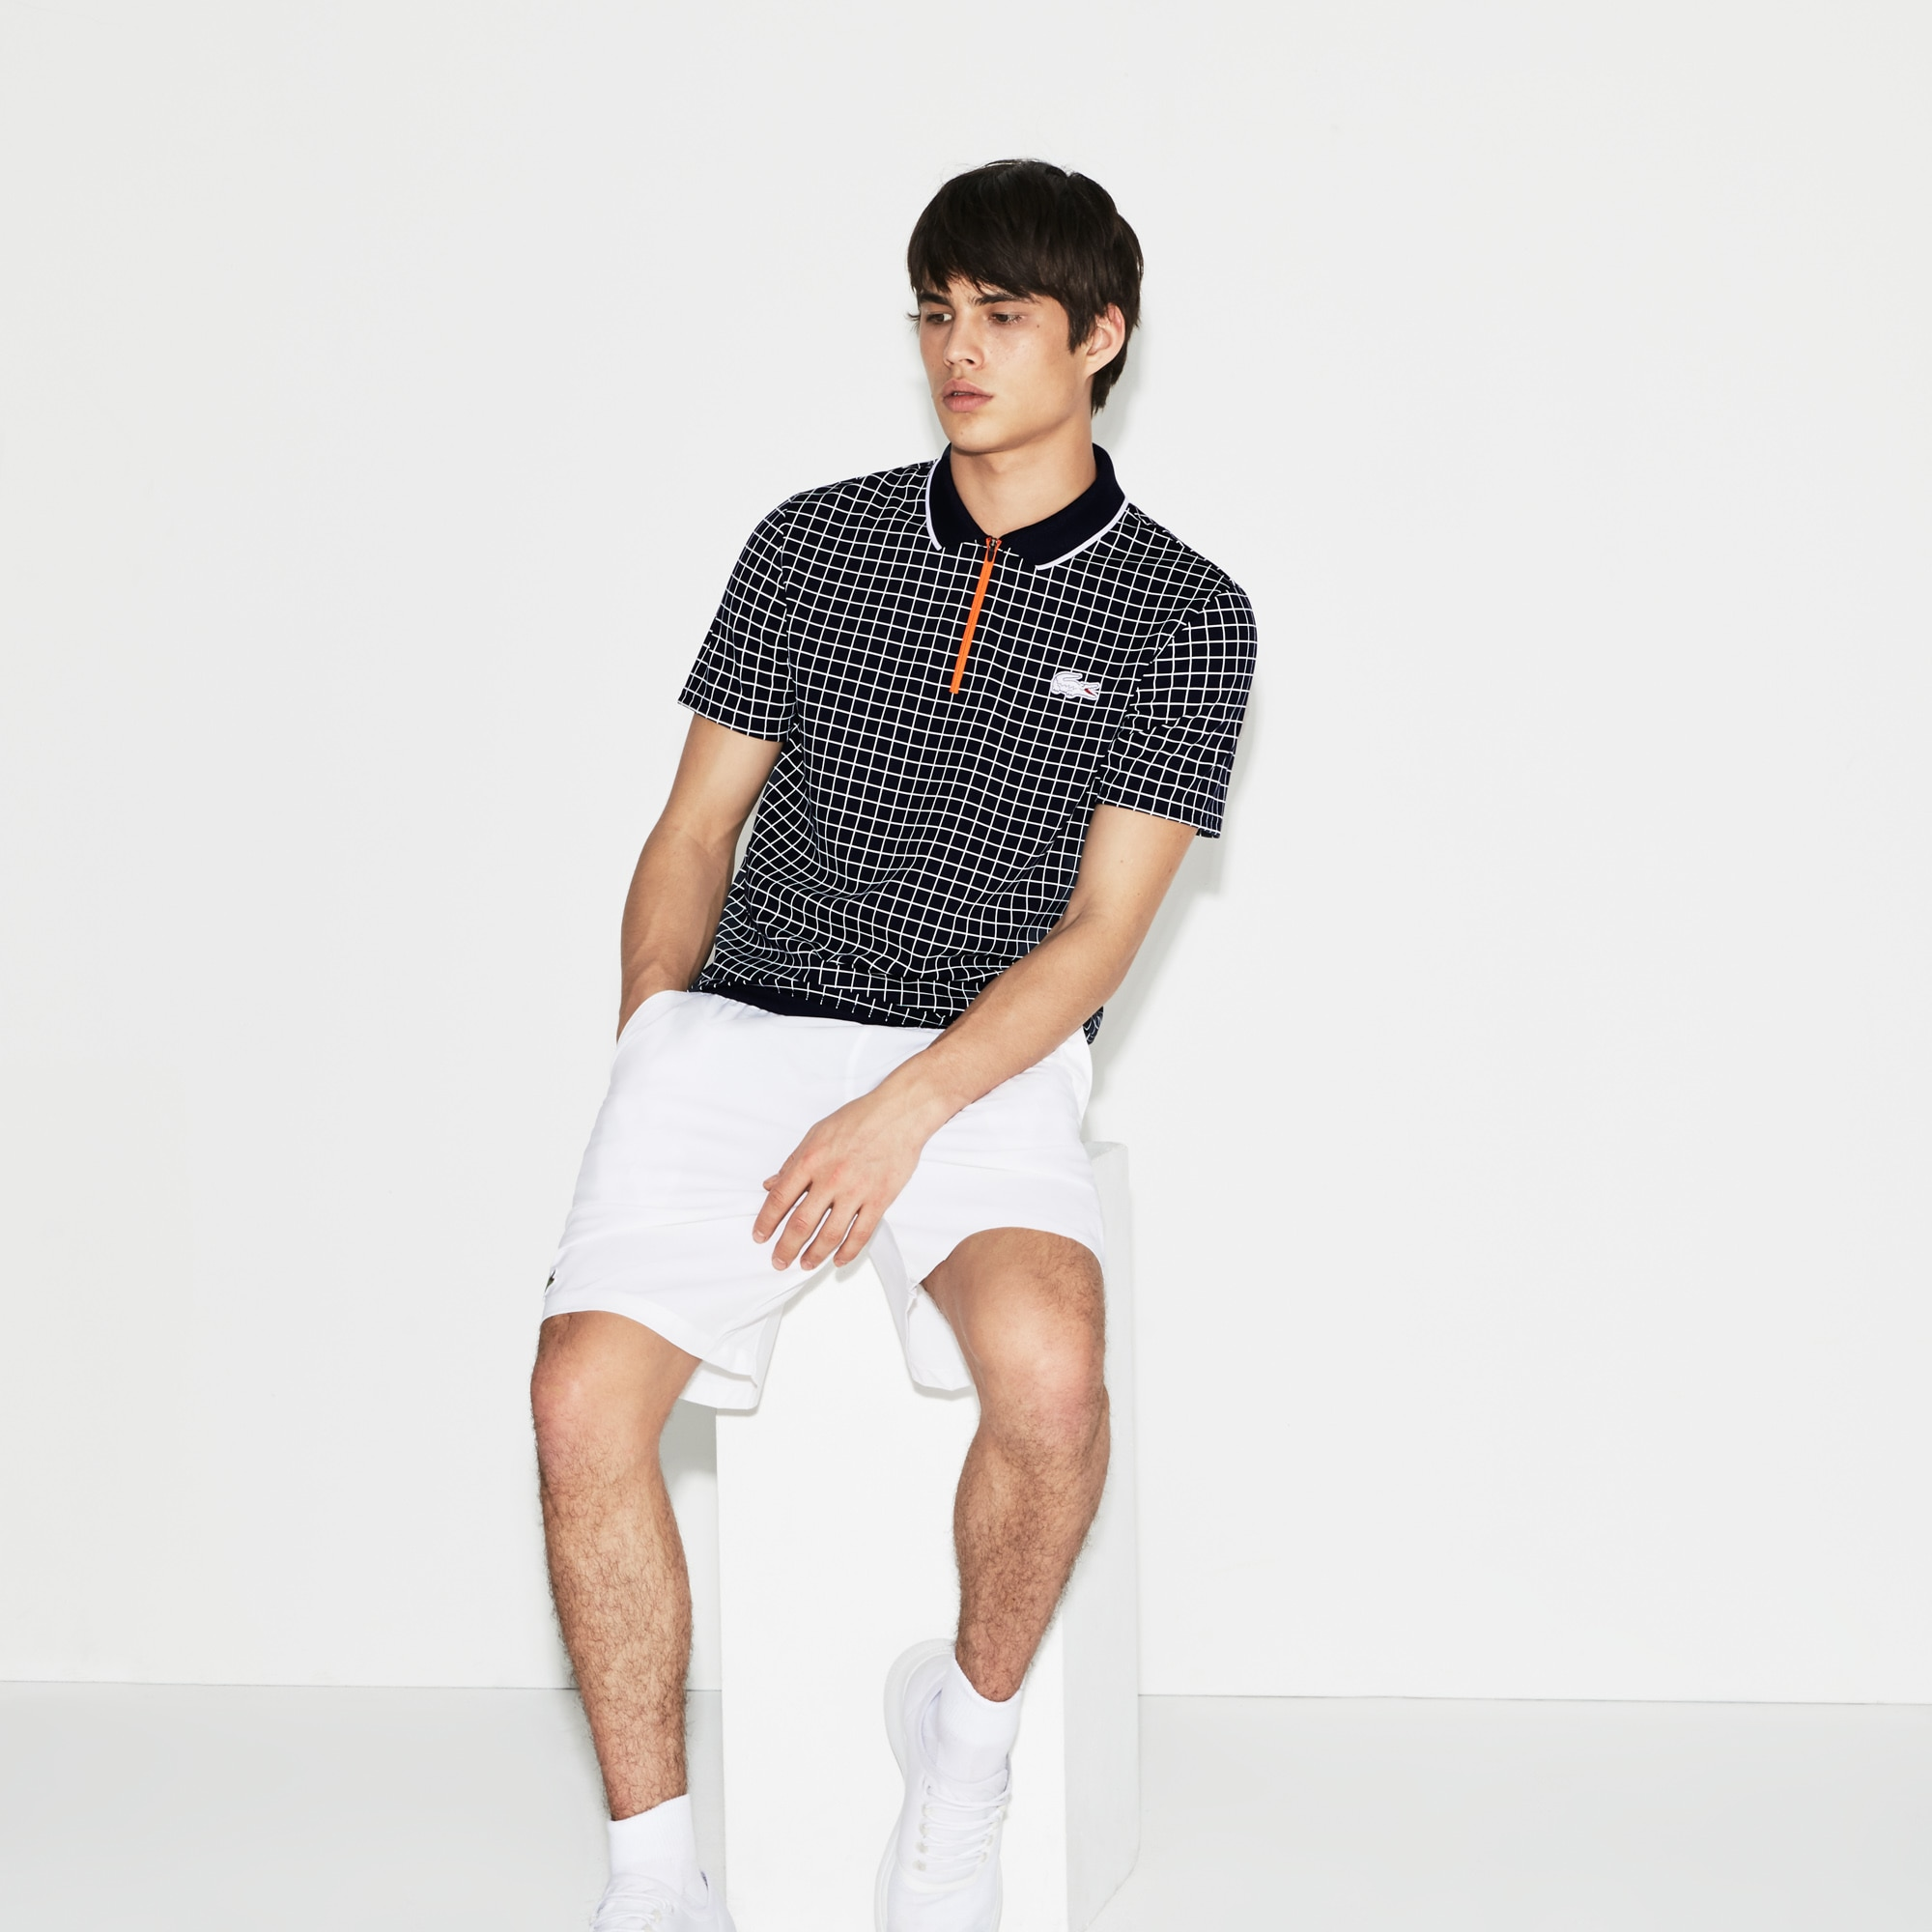 Men's SPORT Roland Garros Edition Print Tech Piqué Polo